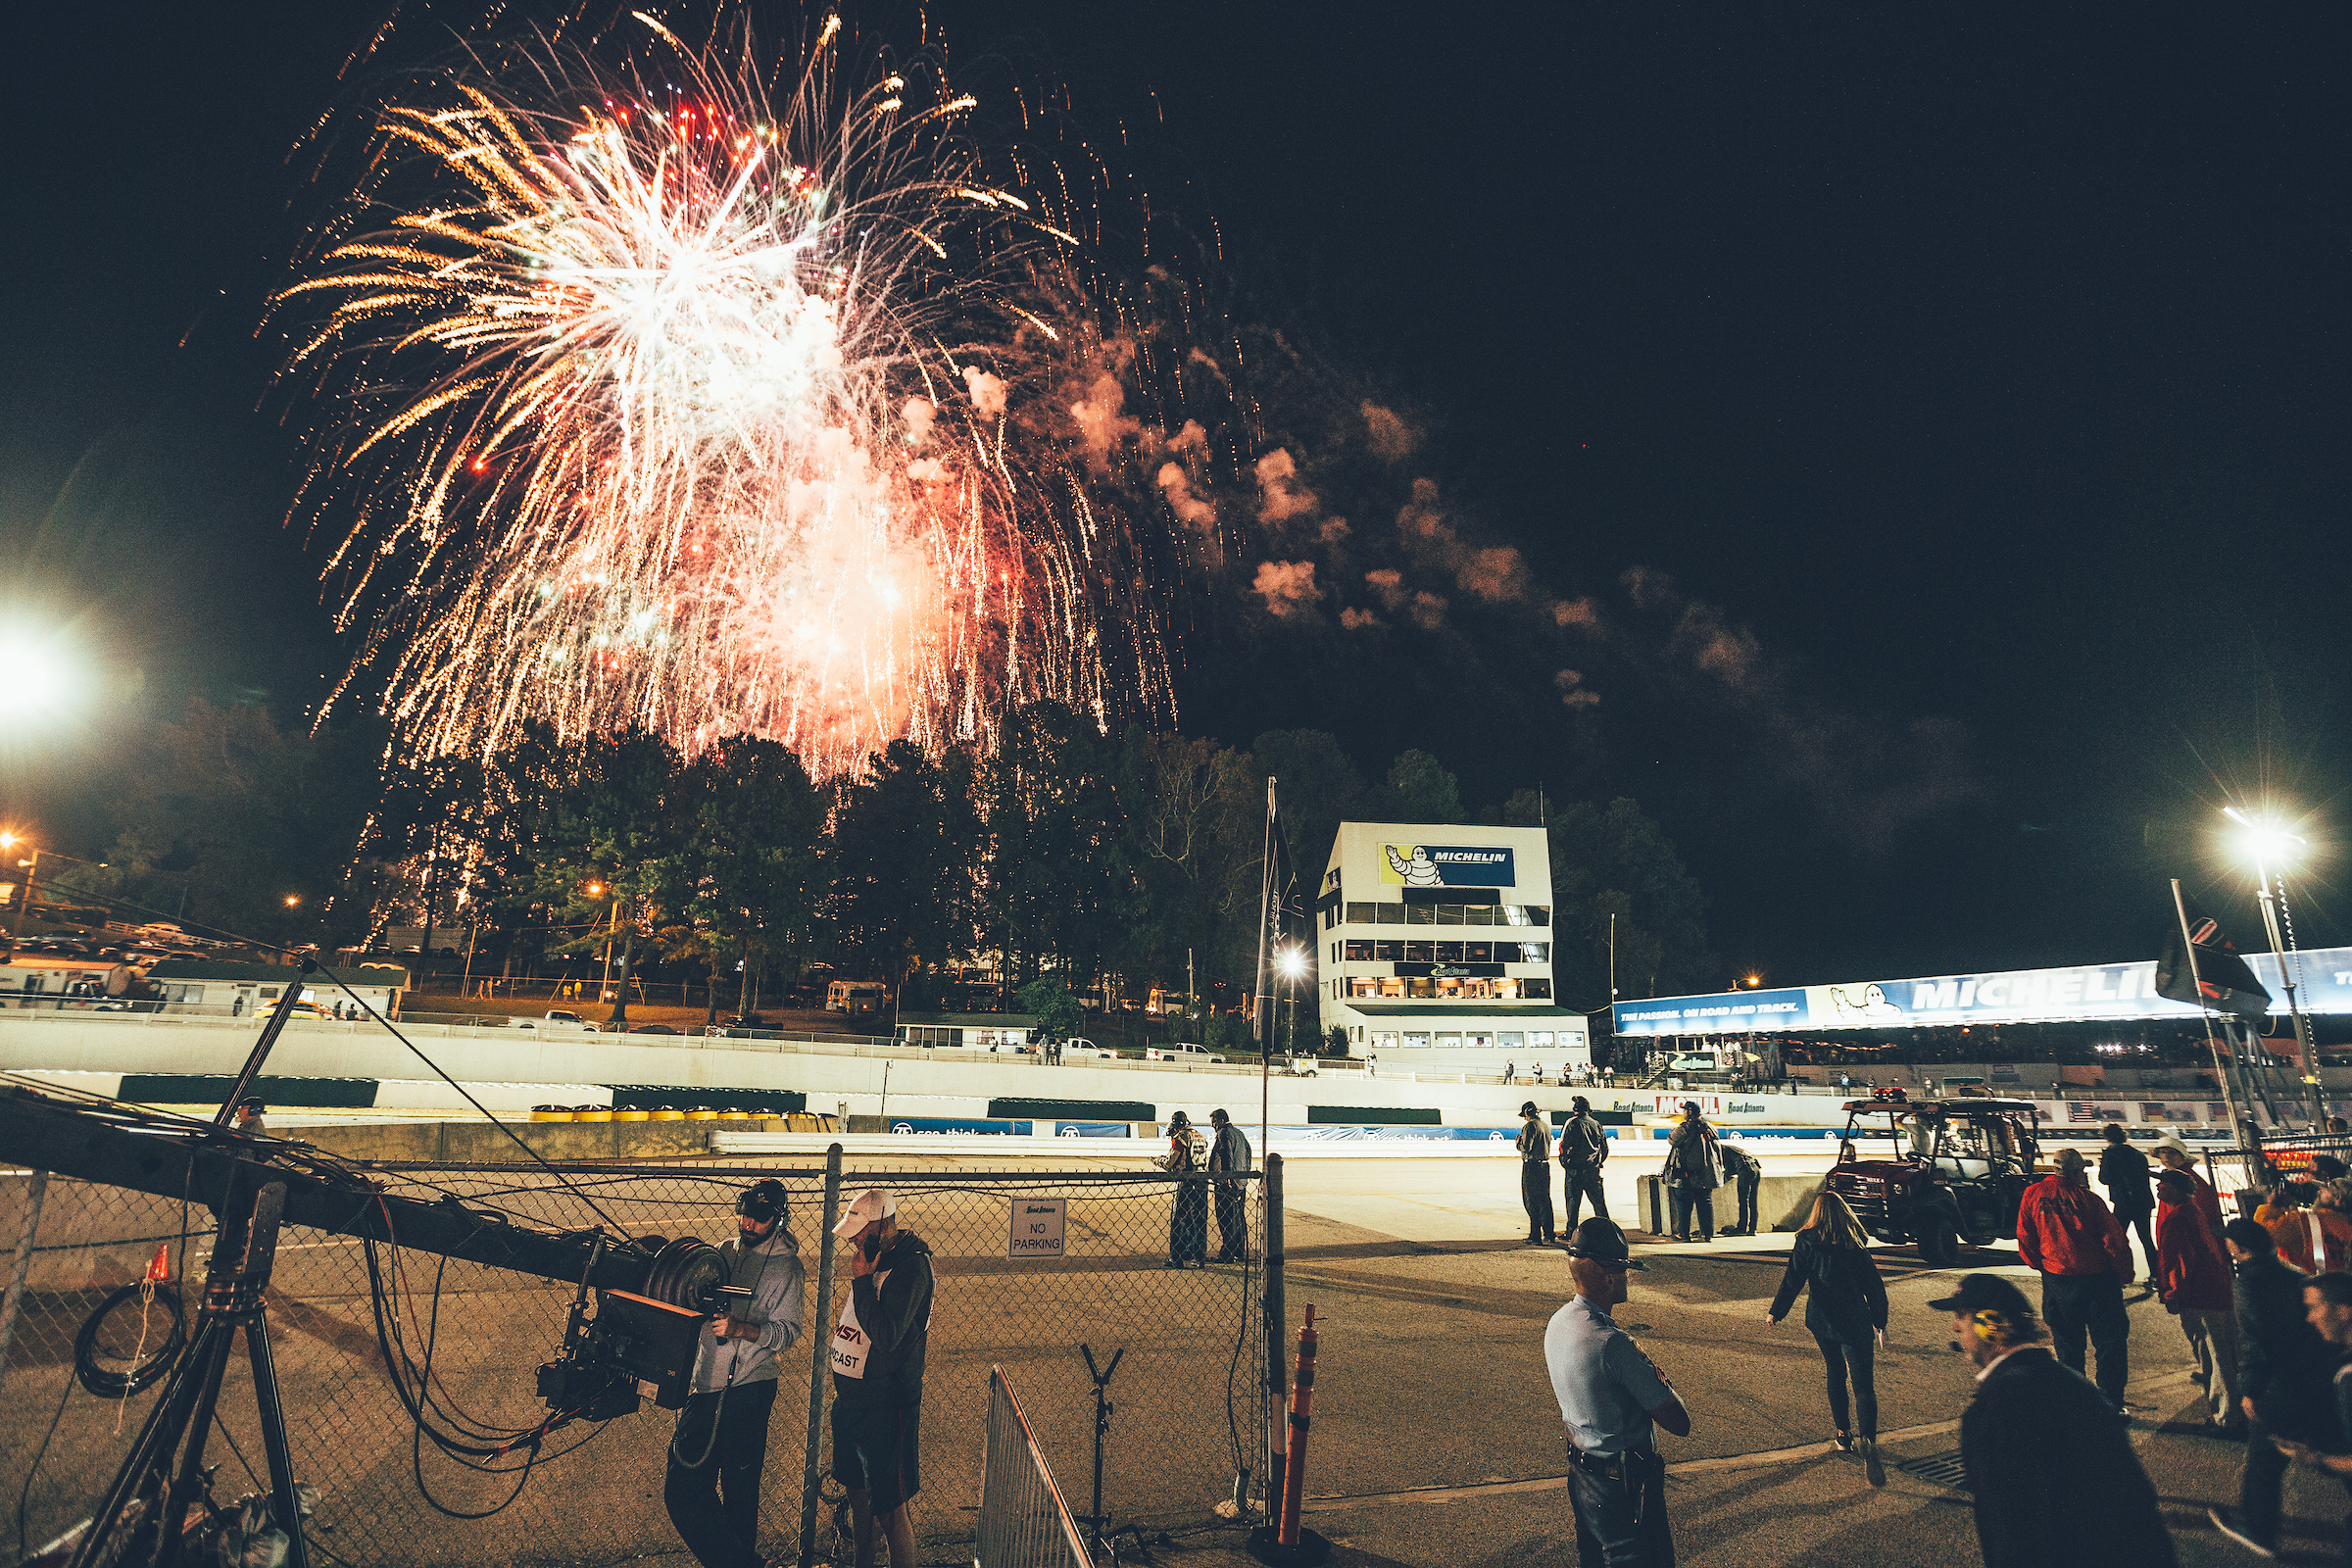 MOTUL PETIT LE MANS: IN ORDER TO FINISH FIRST, FIRST YOU HAVE TO FINISH